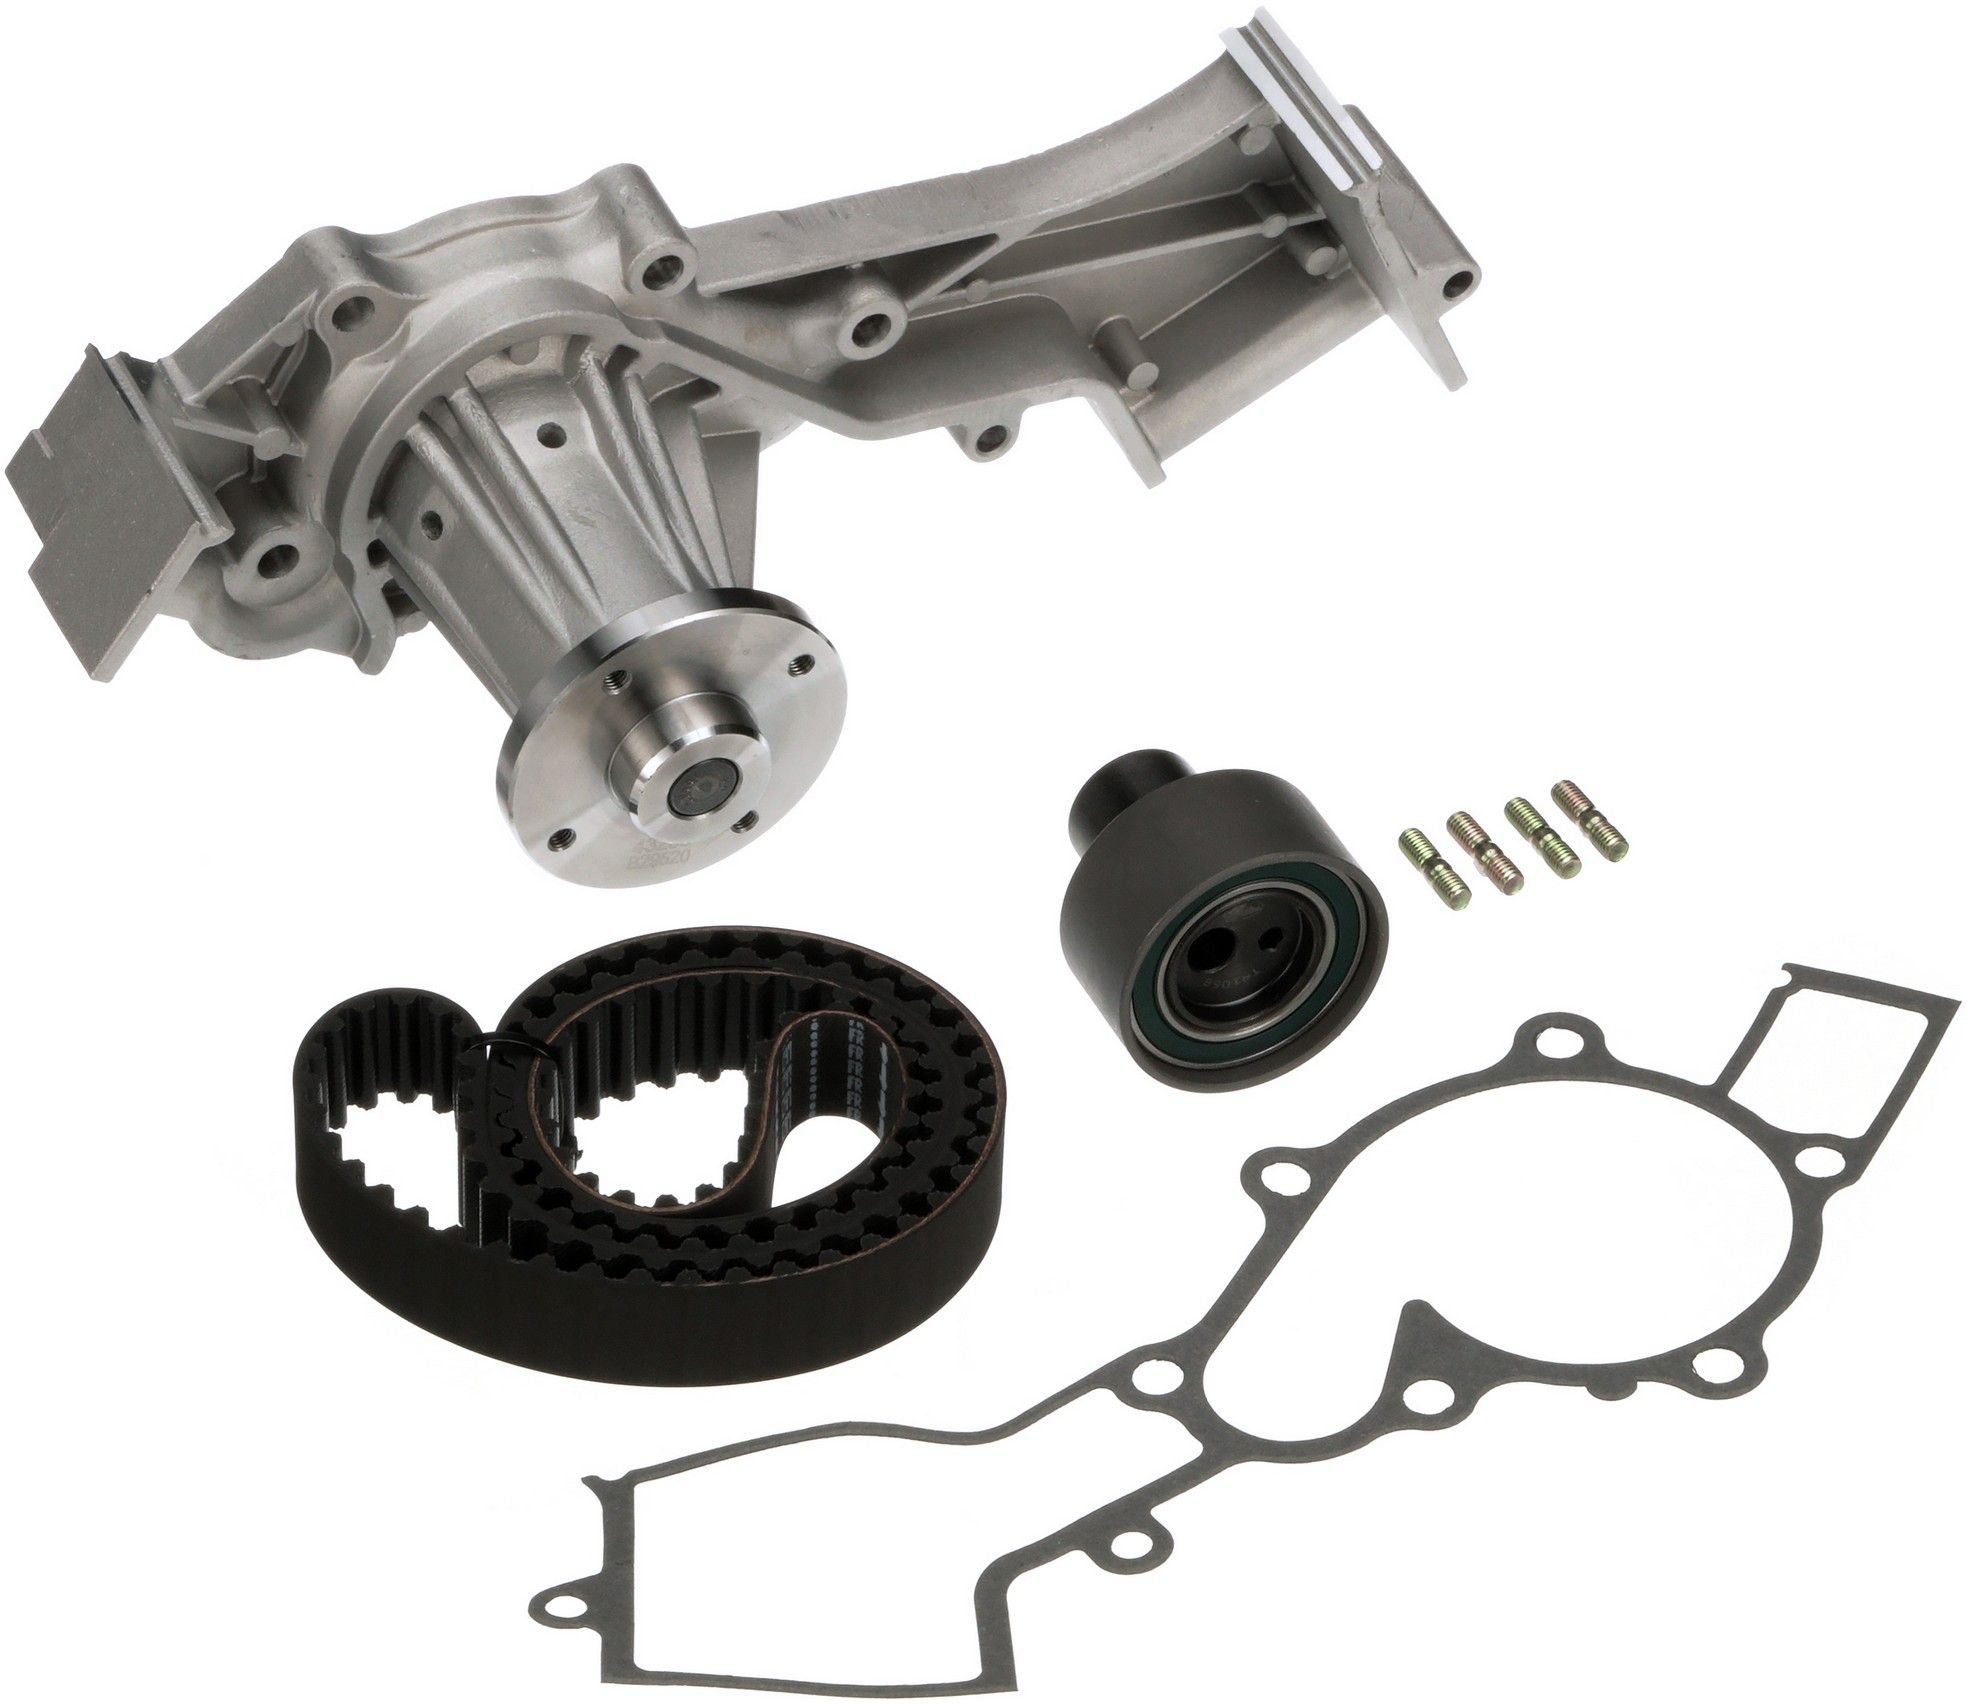 Nissan Frontier Engine Timing Belt Kit With Water Pump Replacement 2004 6 Cyl 33l Gates Tckwp249 Interference Application